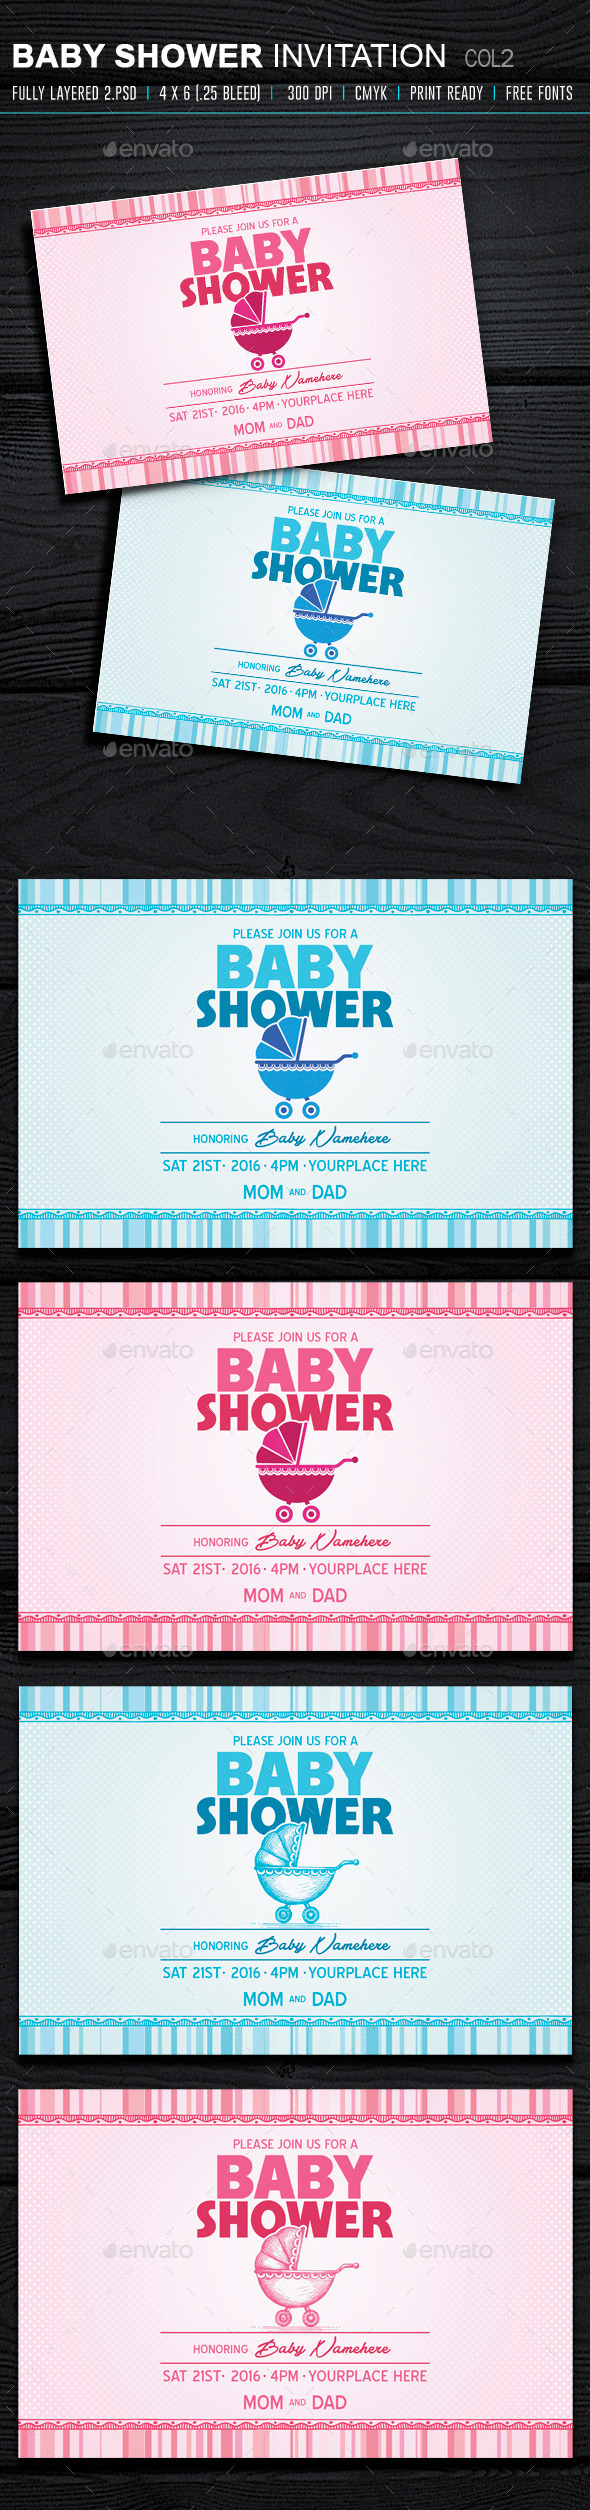 Baby Shower Invitation 2 - Cards & Invites Print Templates